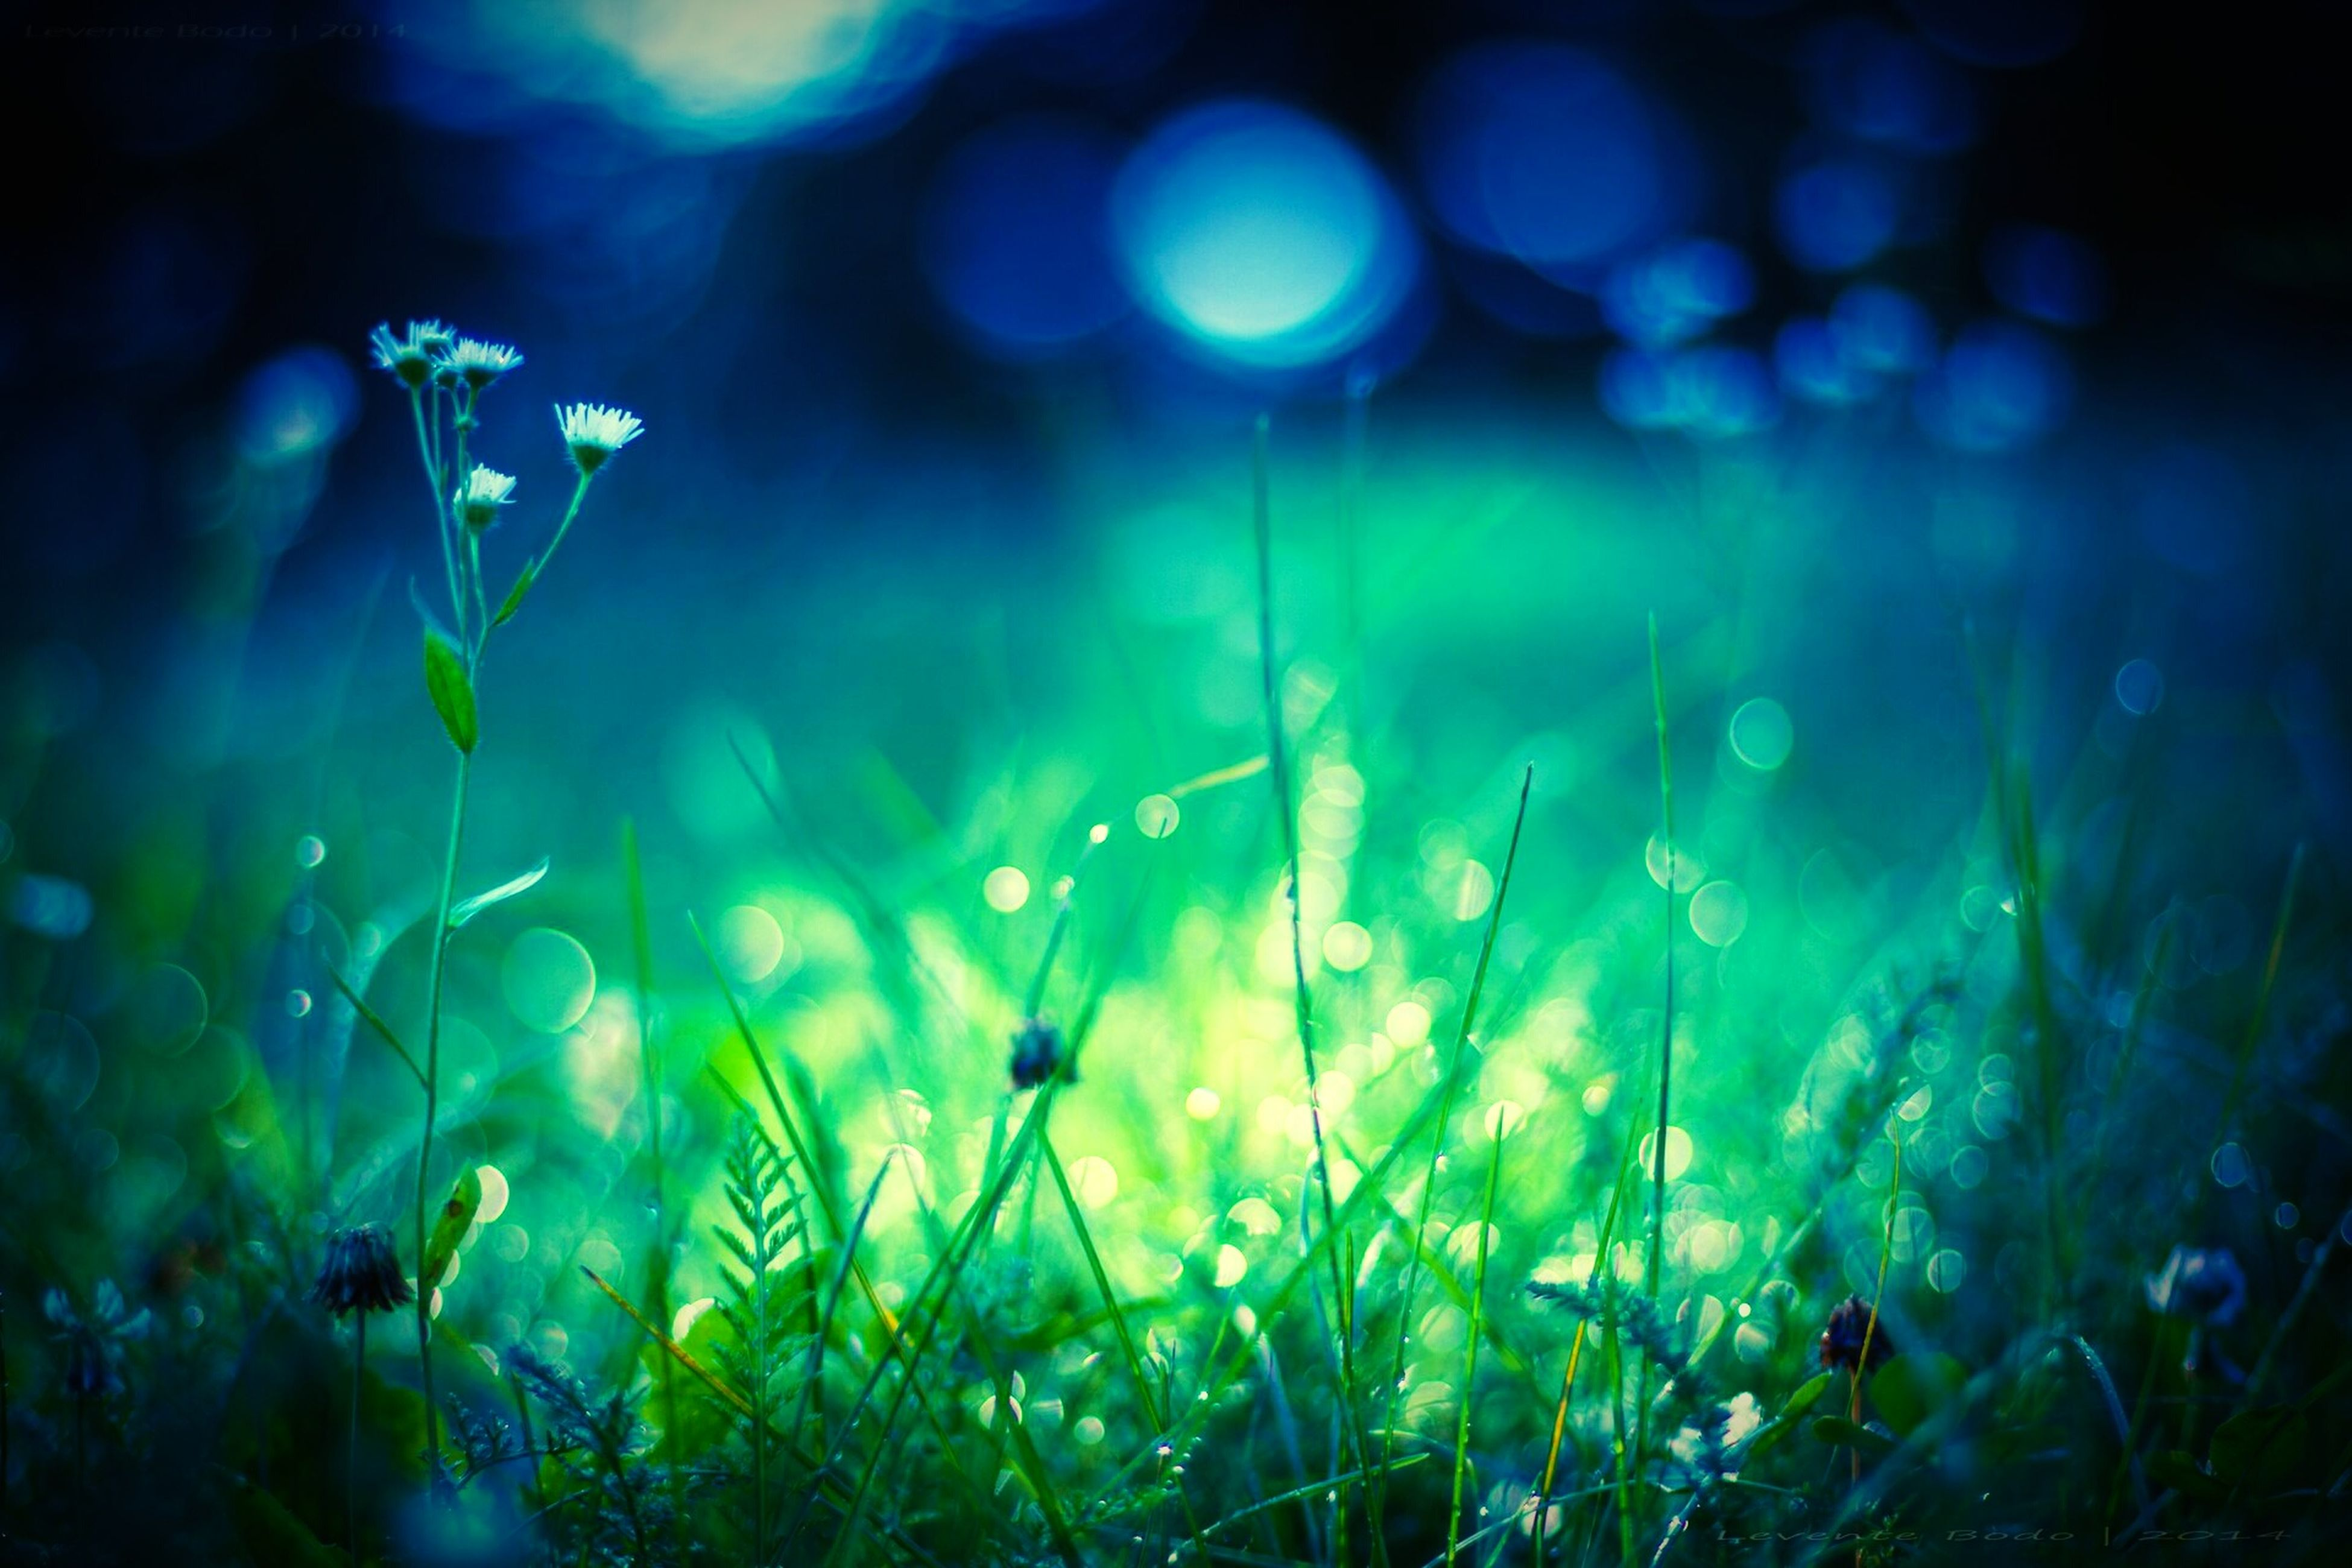 growth, plant, beauty in nature, field, nature, grass, focus on foreground, close-up, freshness, tranquility, selective focus, flower, night, fragility, growing, outdoors, stem, green color, no people, lens flare